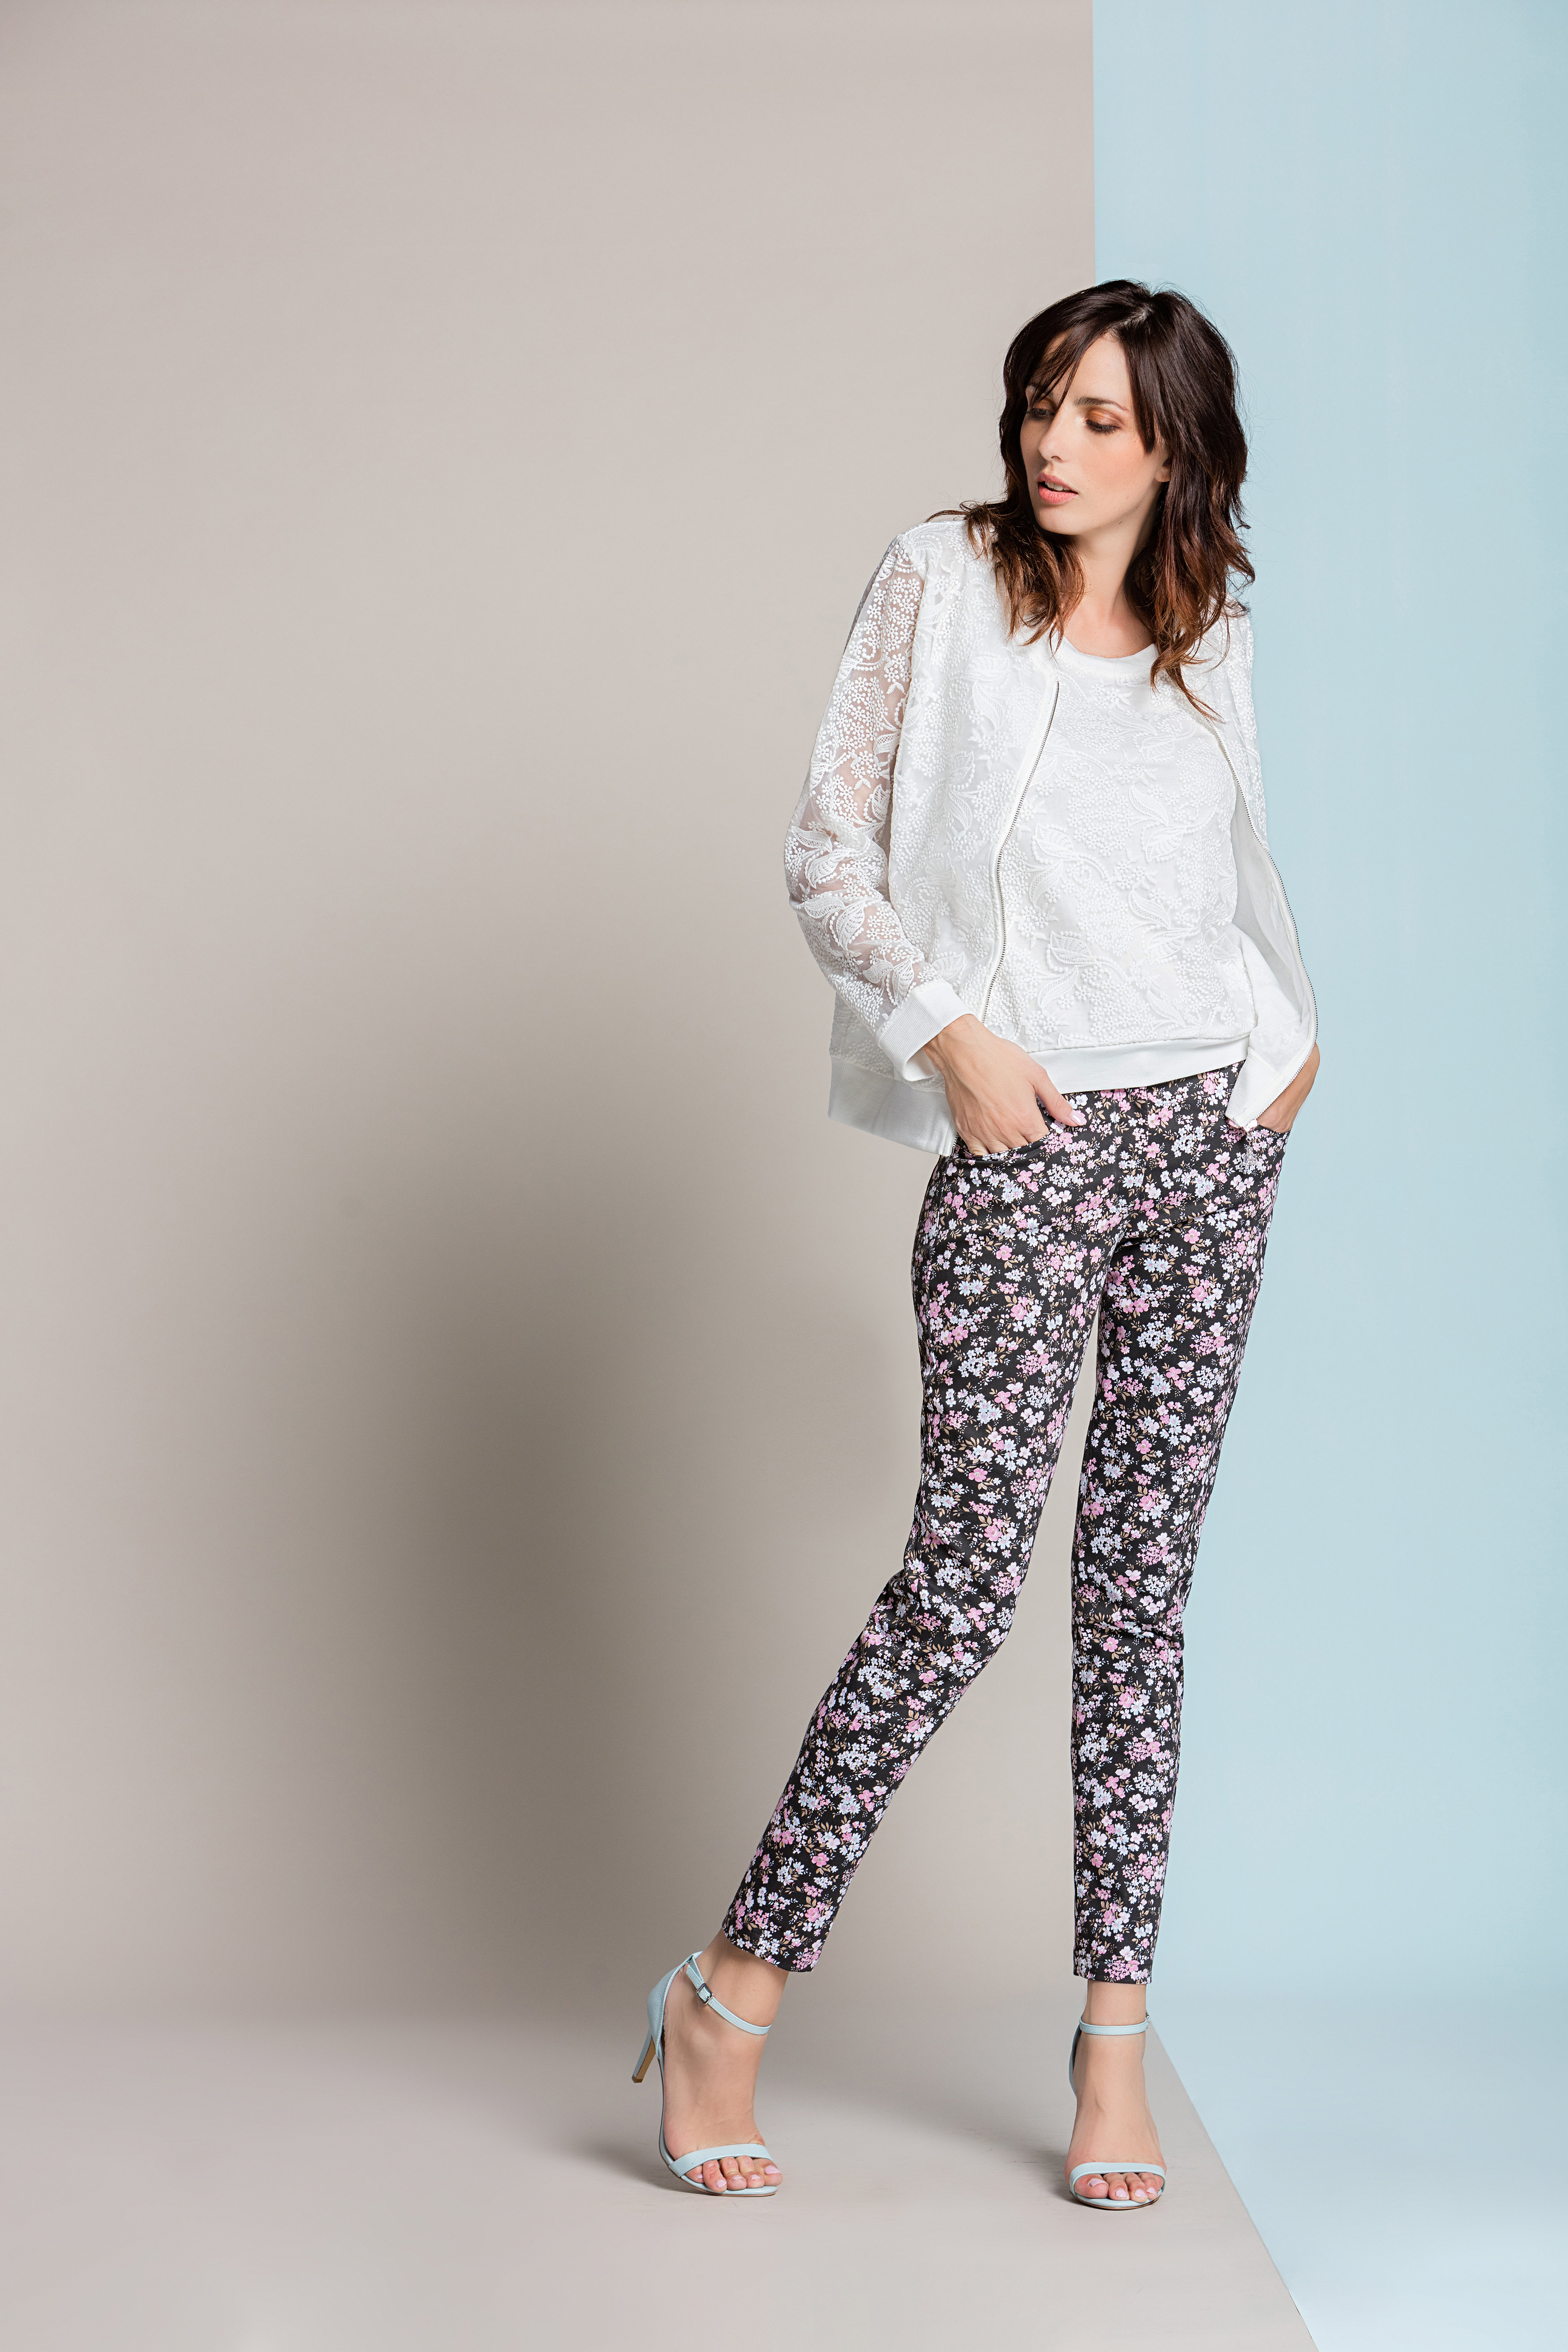 Paul Brial: Blush Flower Princess Seamed Cotton Pocket Pant SOLD OUT